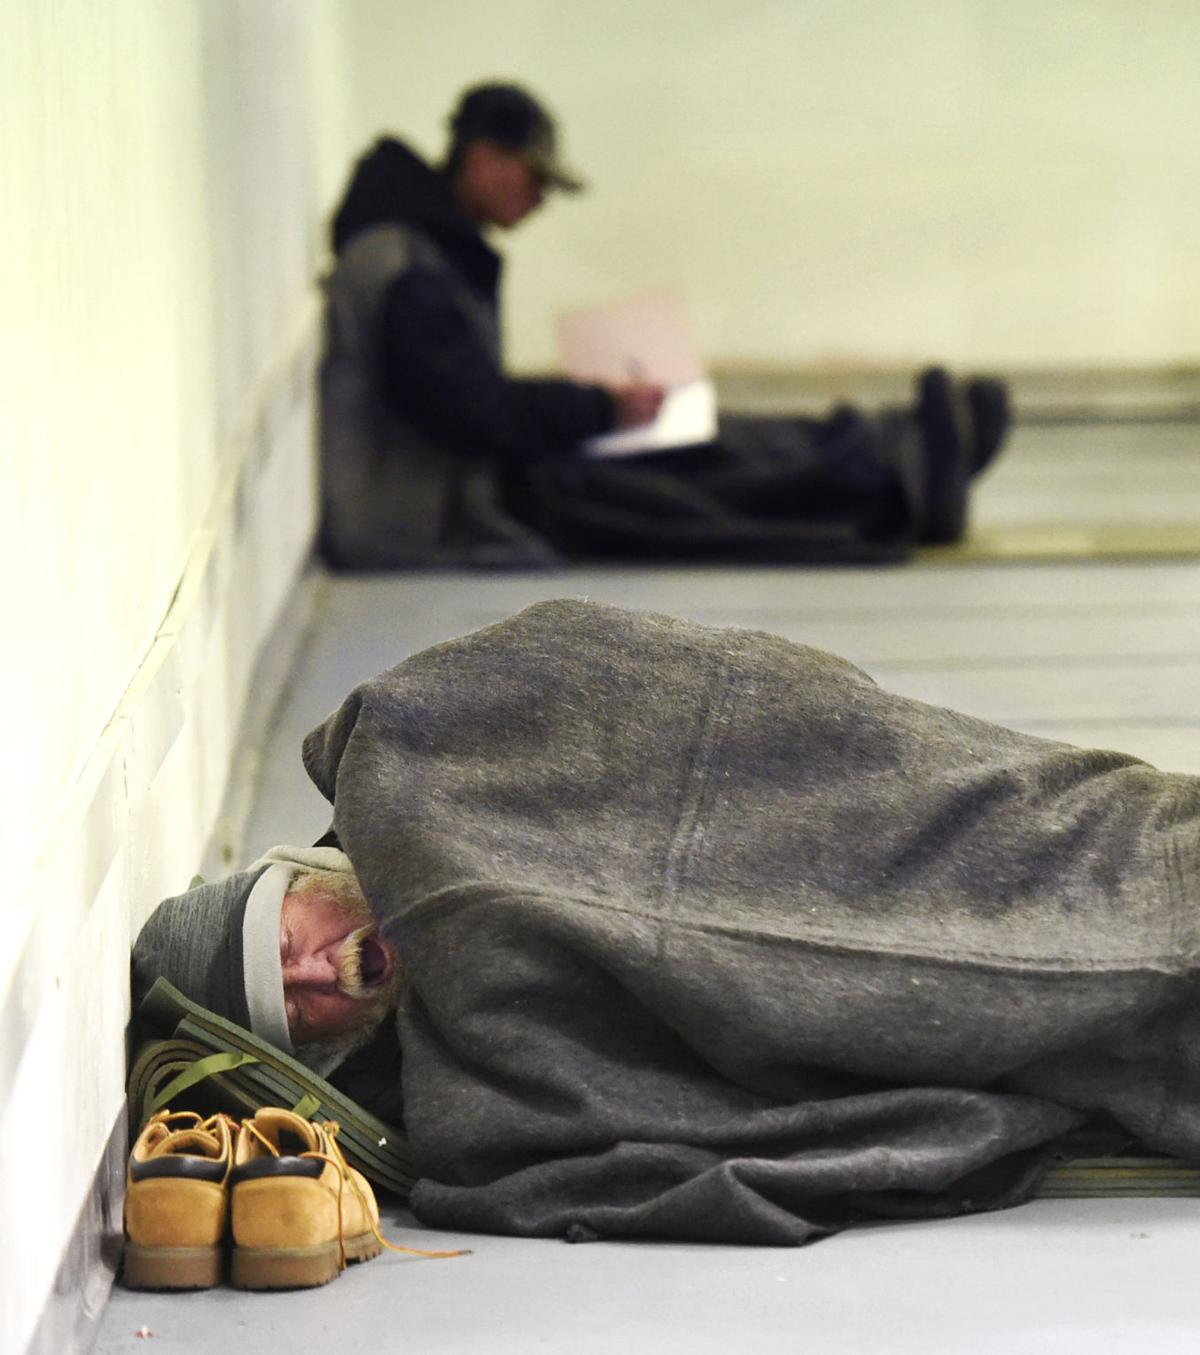 Colorado Springs warming shelter opens after Salvation Army wins approval